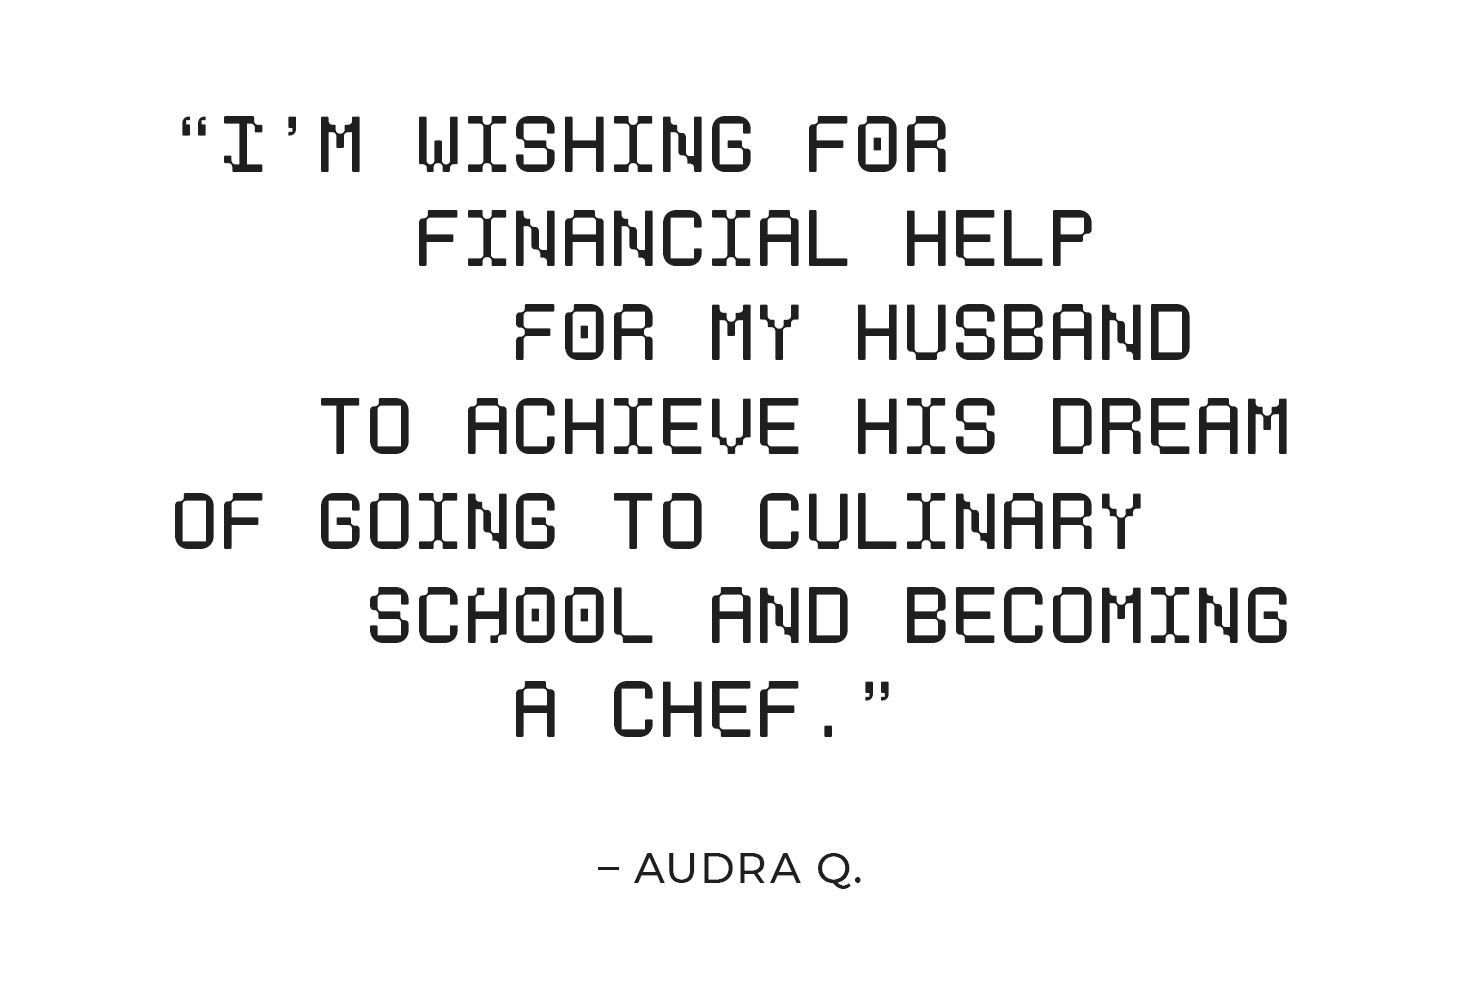 """""""I'm wishing for financial help for my hardworking husband to achieve his dream of going to culinary school and becoming a chef."""" – Audra Q."""